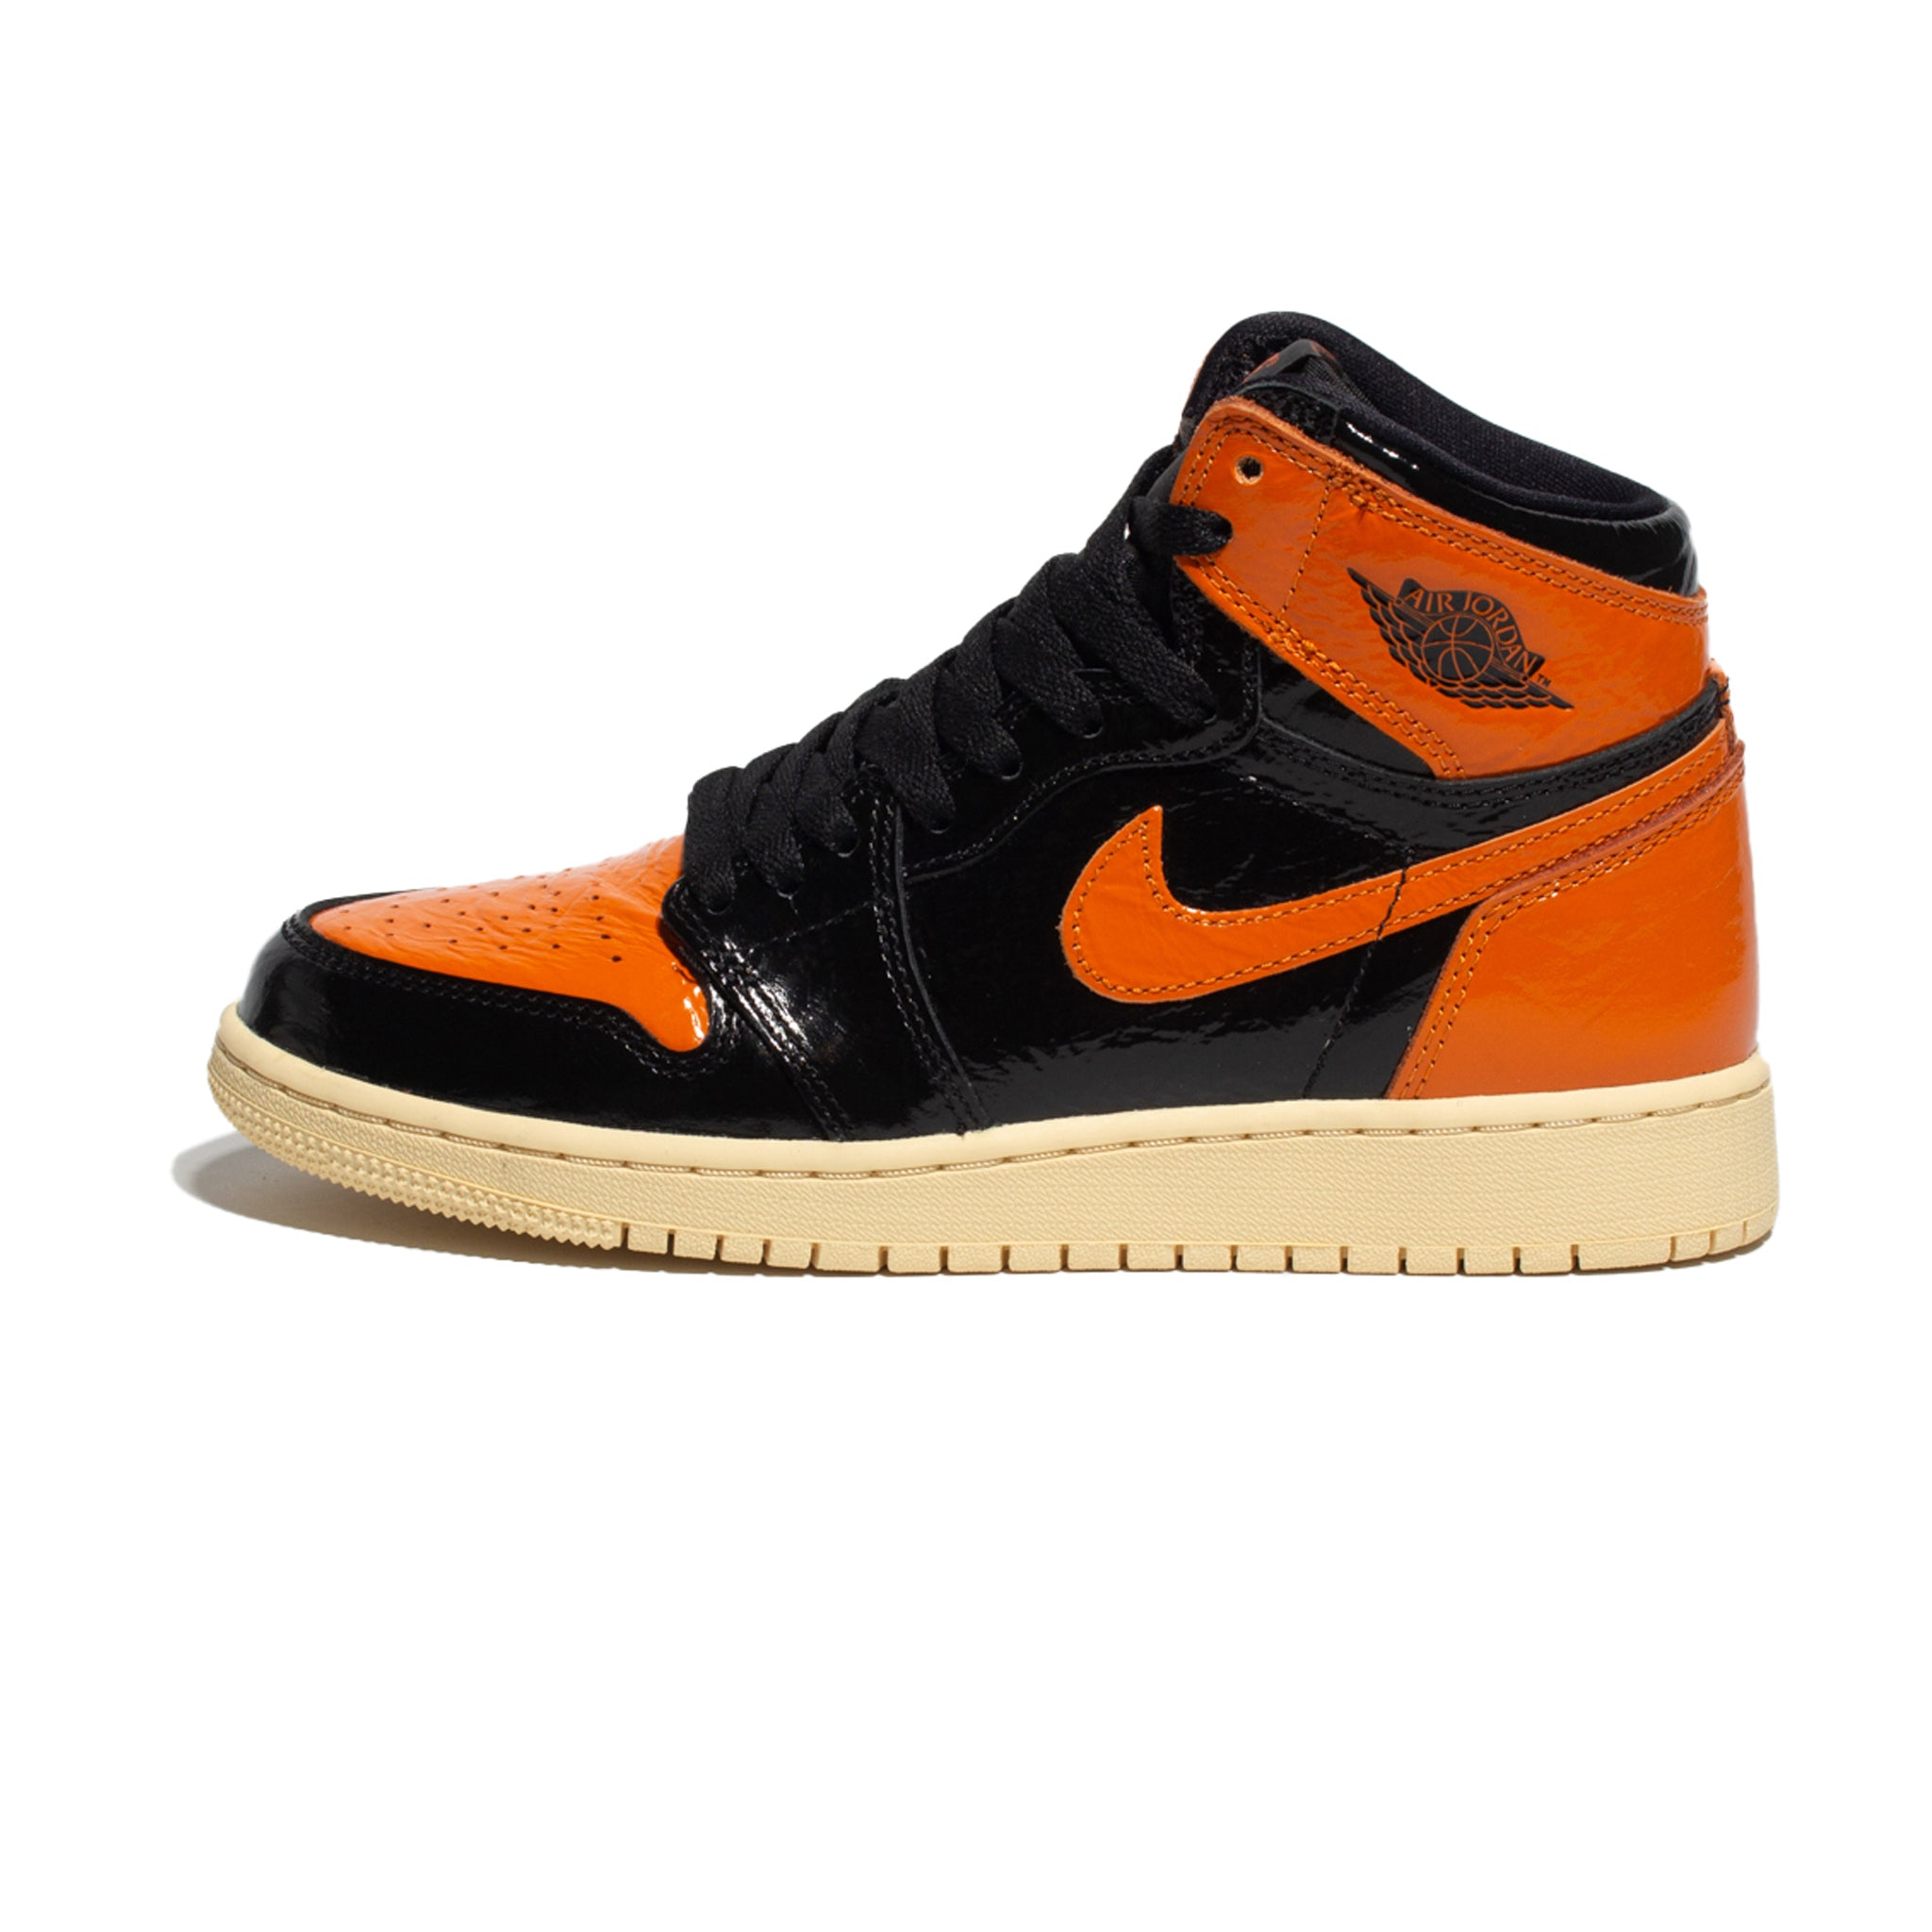 Air Jordan 1 Retro High OG (GS) 'Shattered Backboard 3.0'